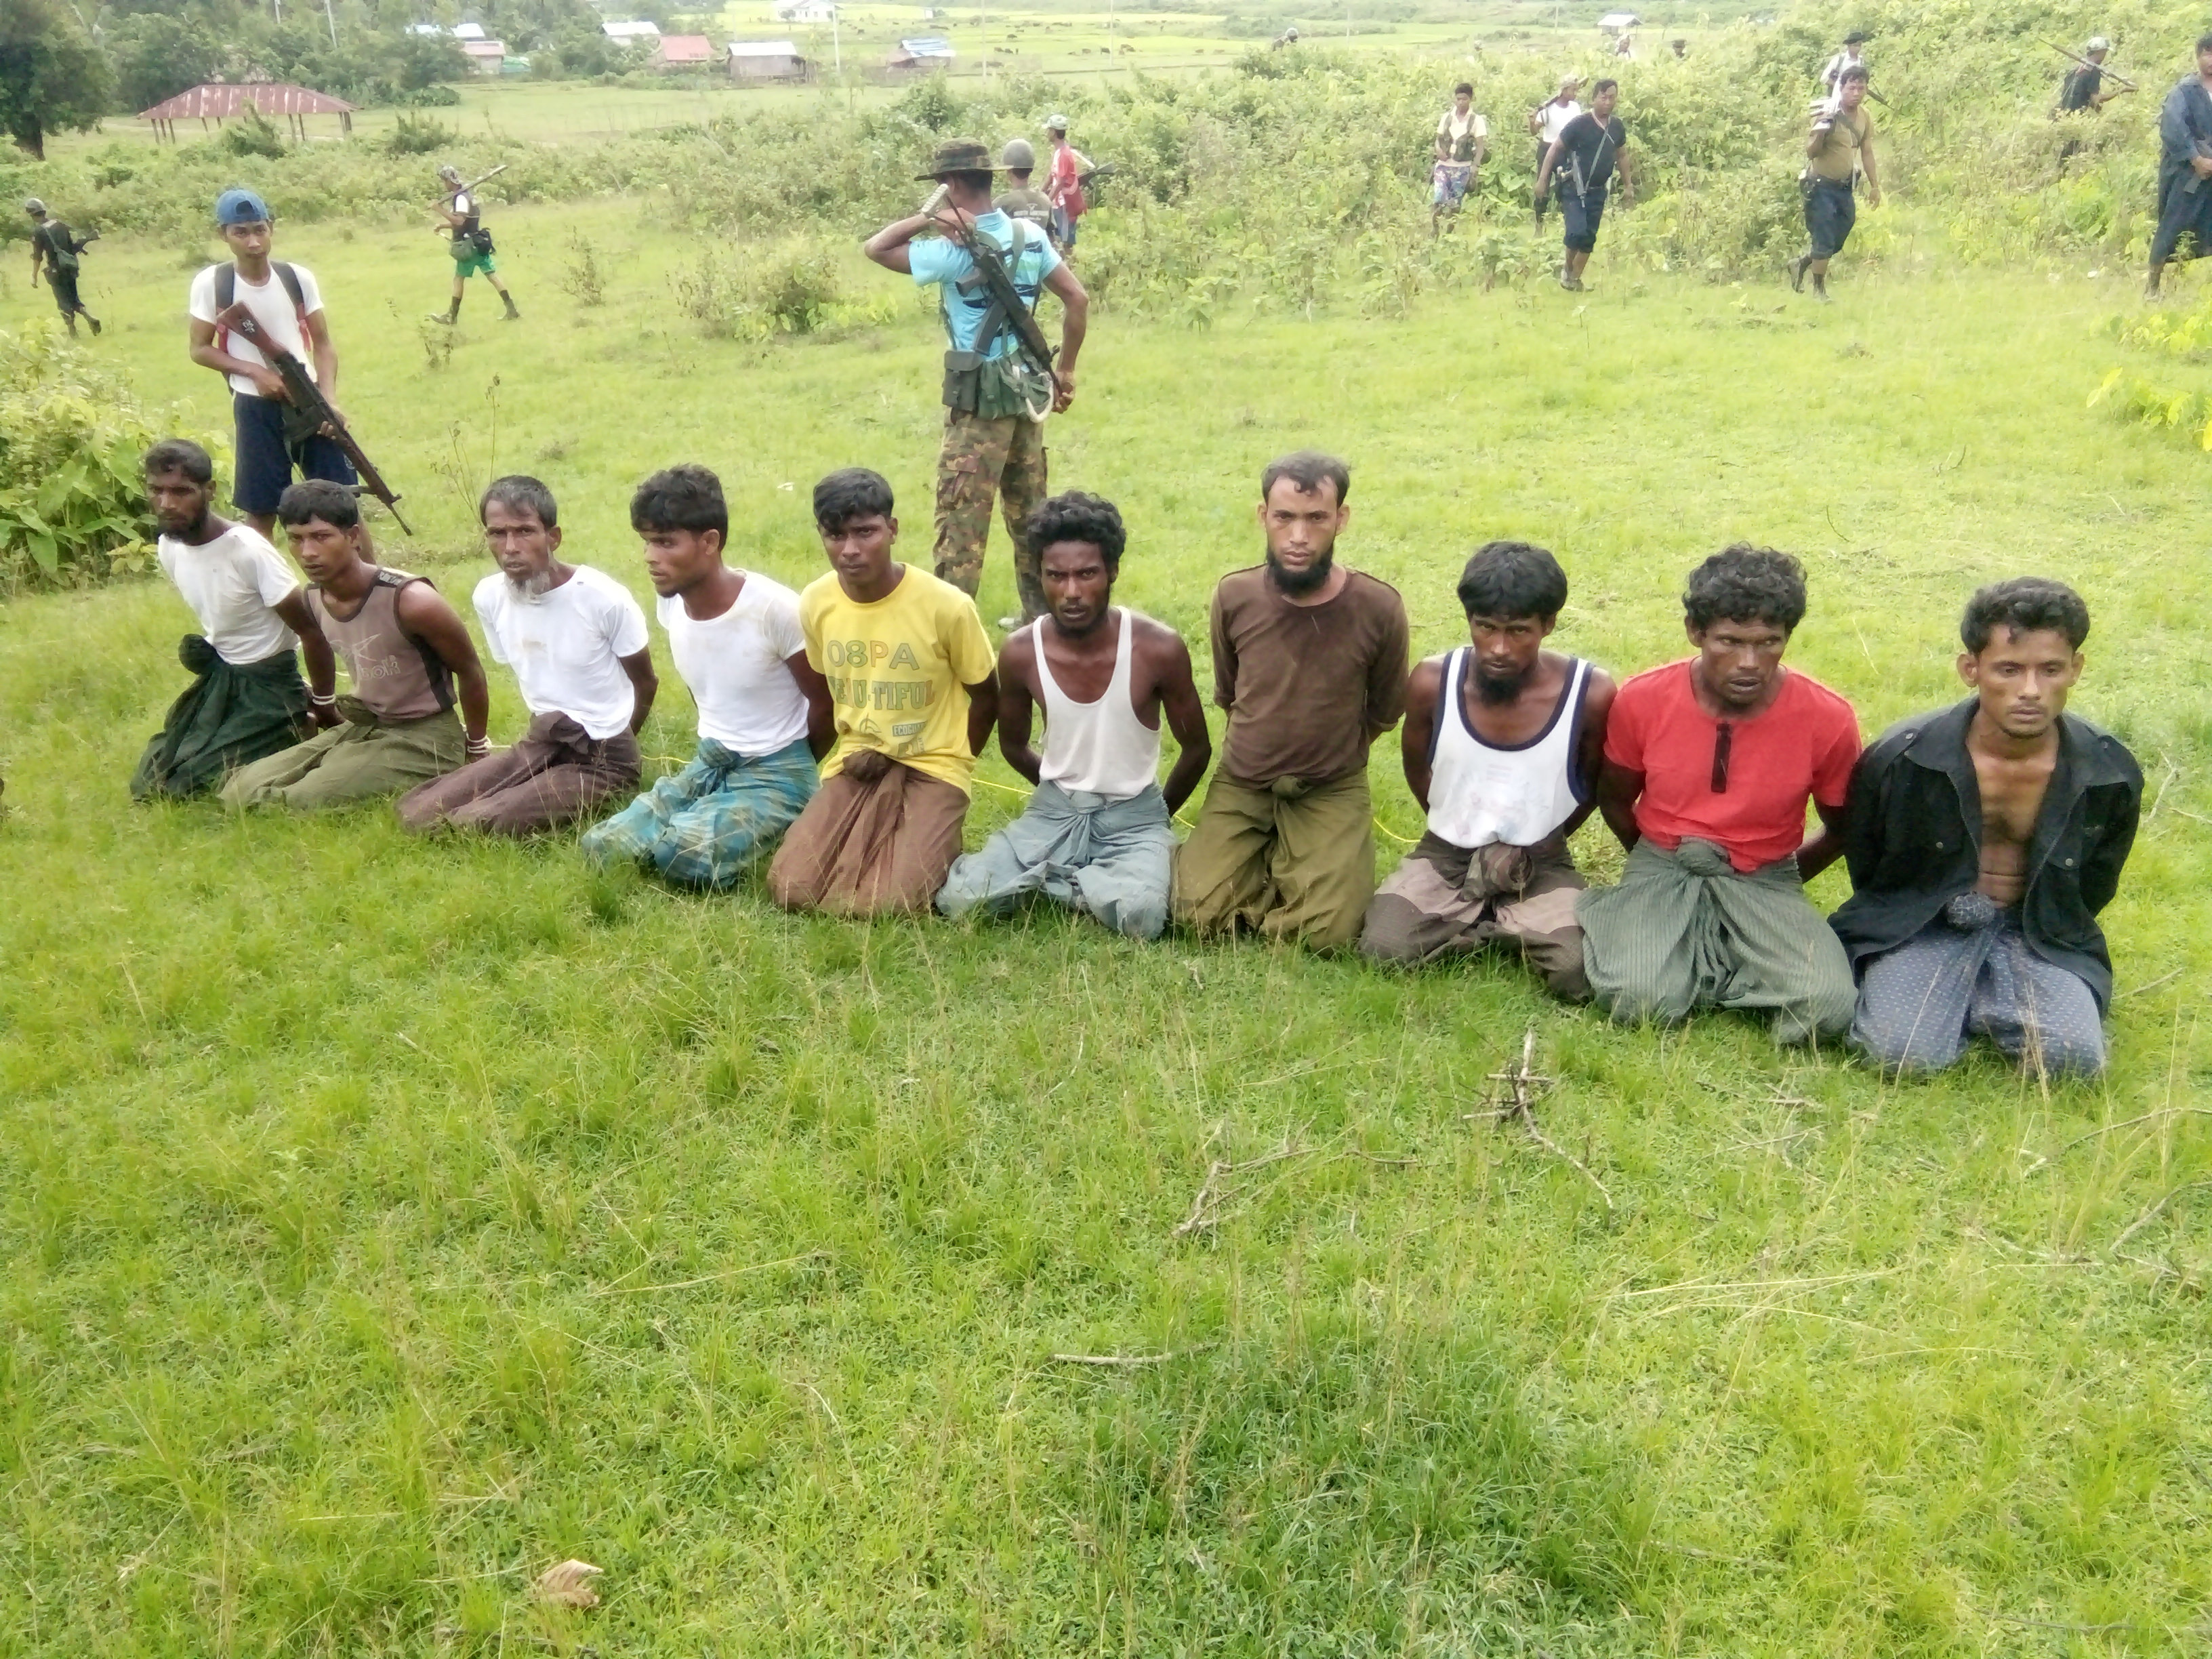 Ten Rohingya Muslim men with their hands bound kneel as members of the Myanmar security forces stand guard in Inn Din village September 2, 2017.